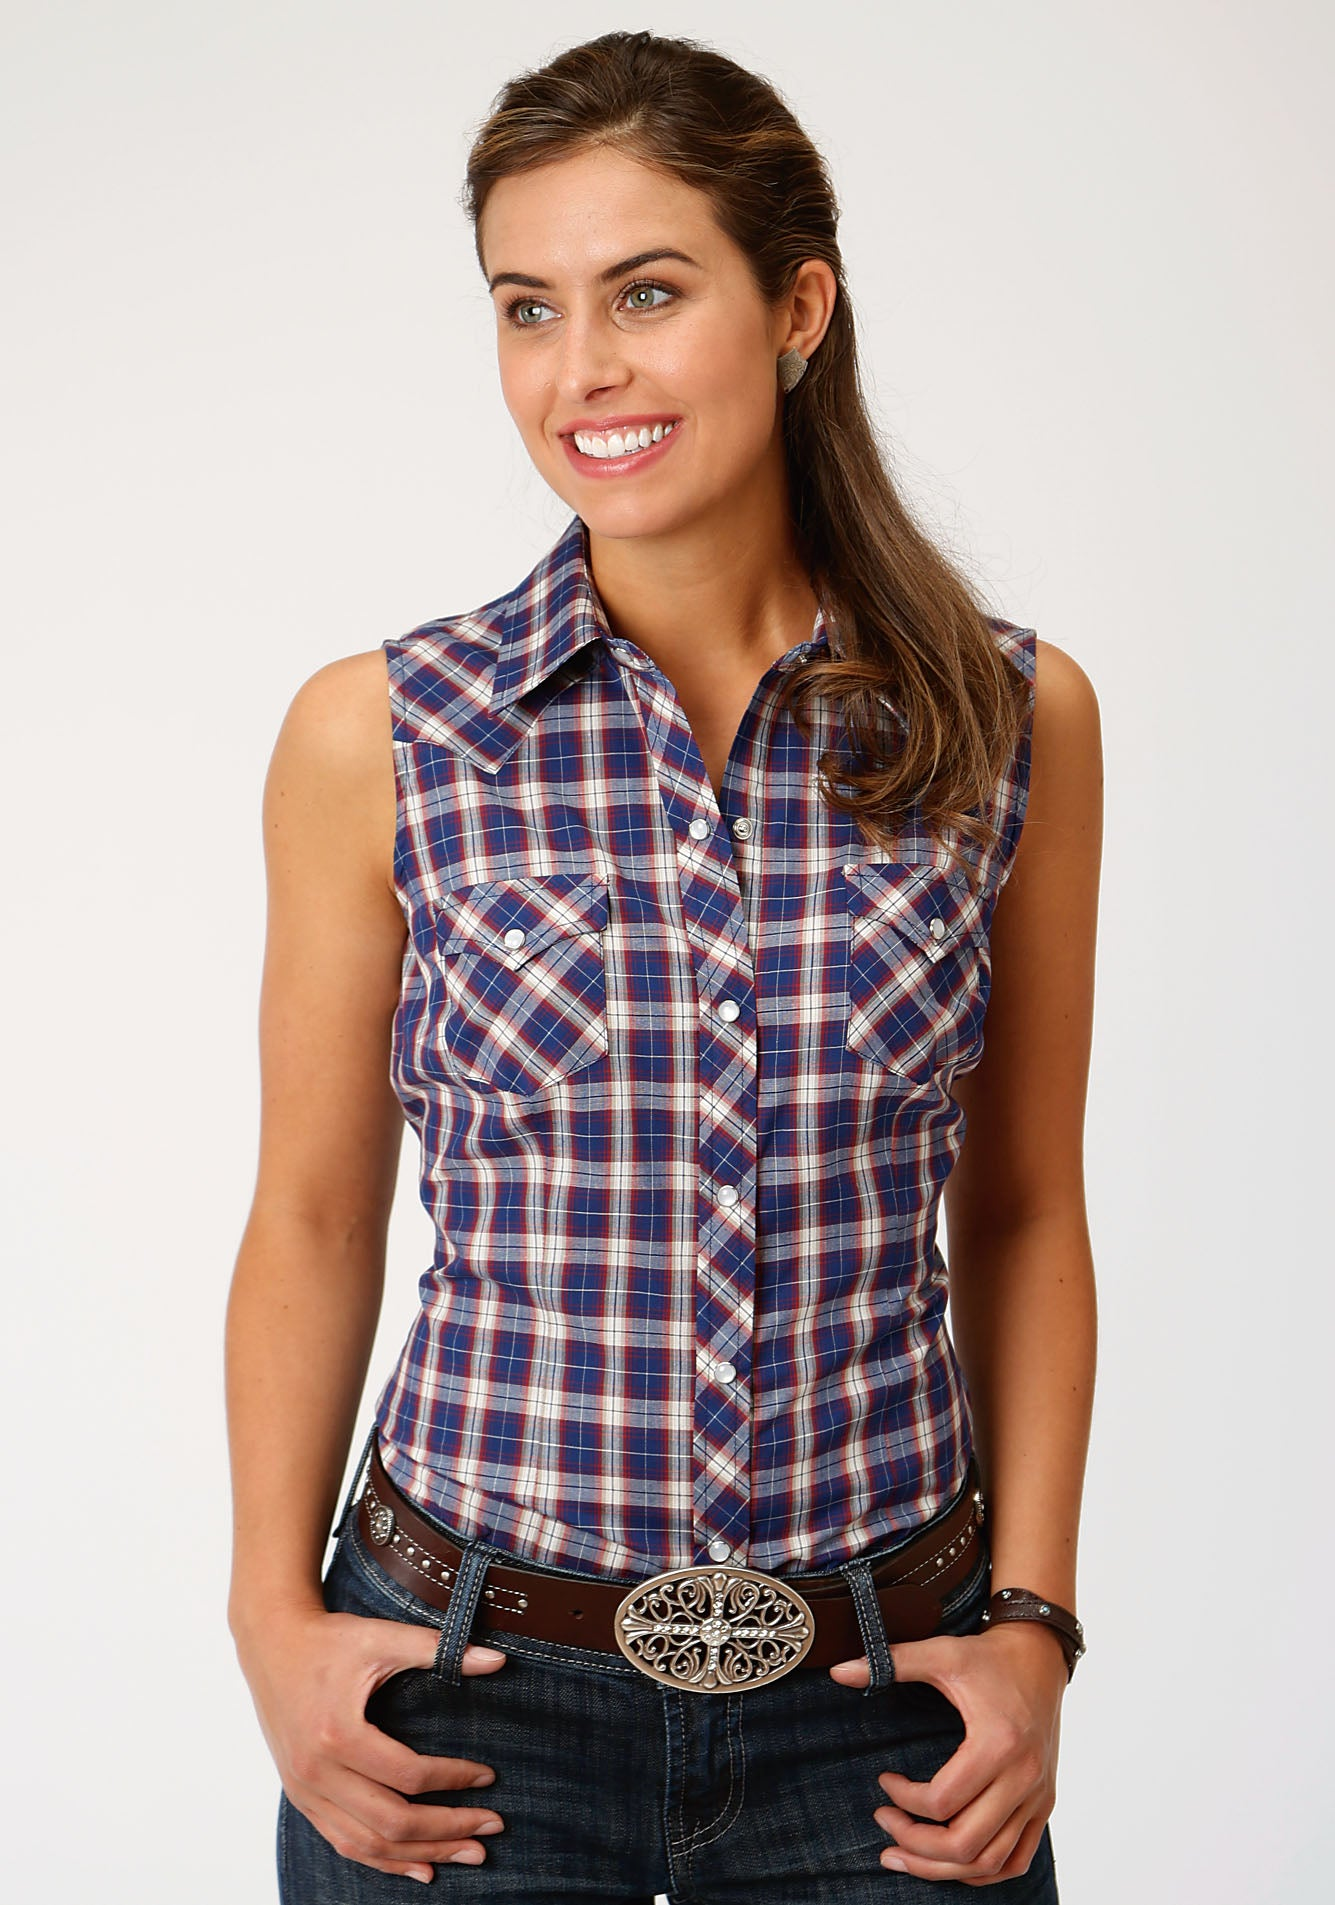 ROPER WOMENS BLUE 00041 NAVY/RED/TAN PLAID KARMAN CLASSICS- 55/45 PLAID SLEEVELESS